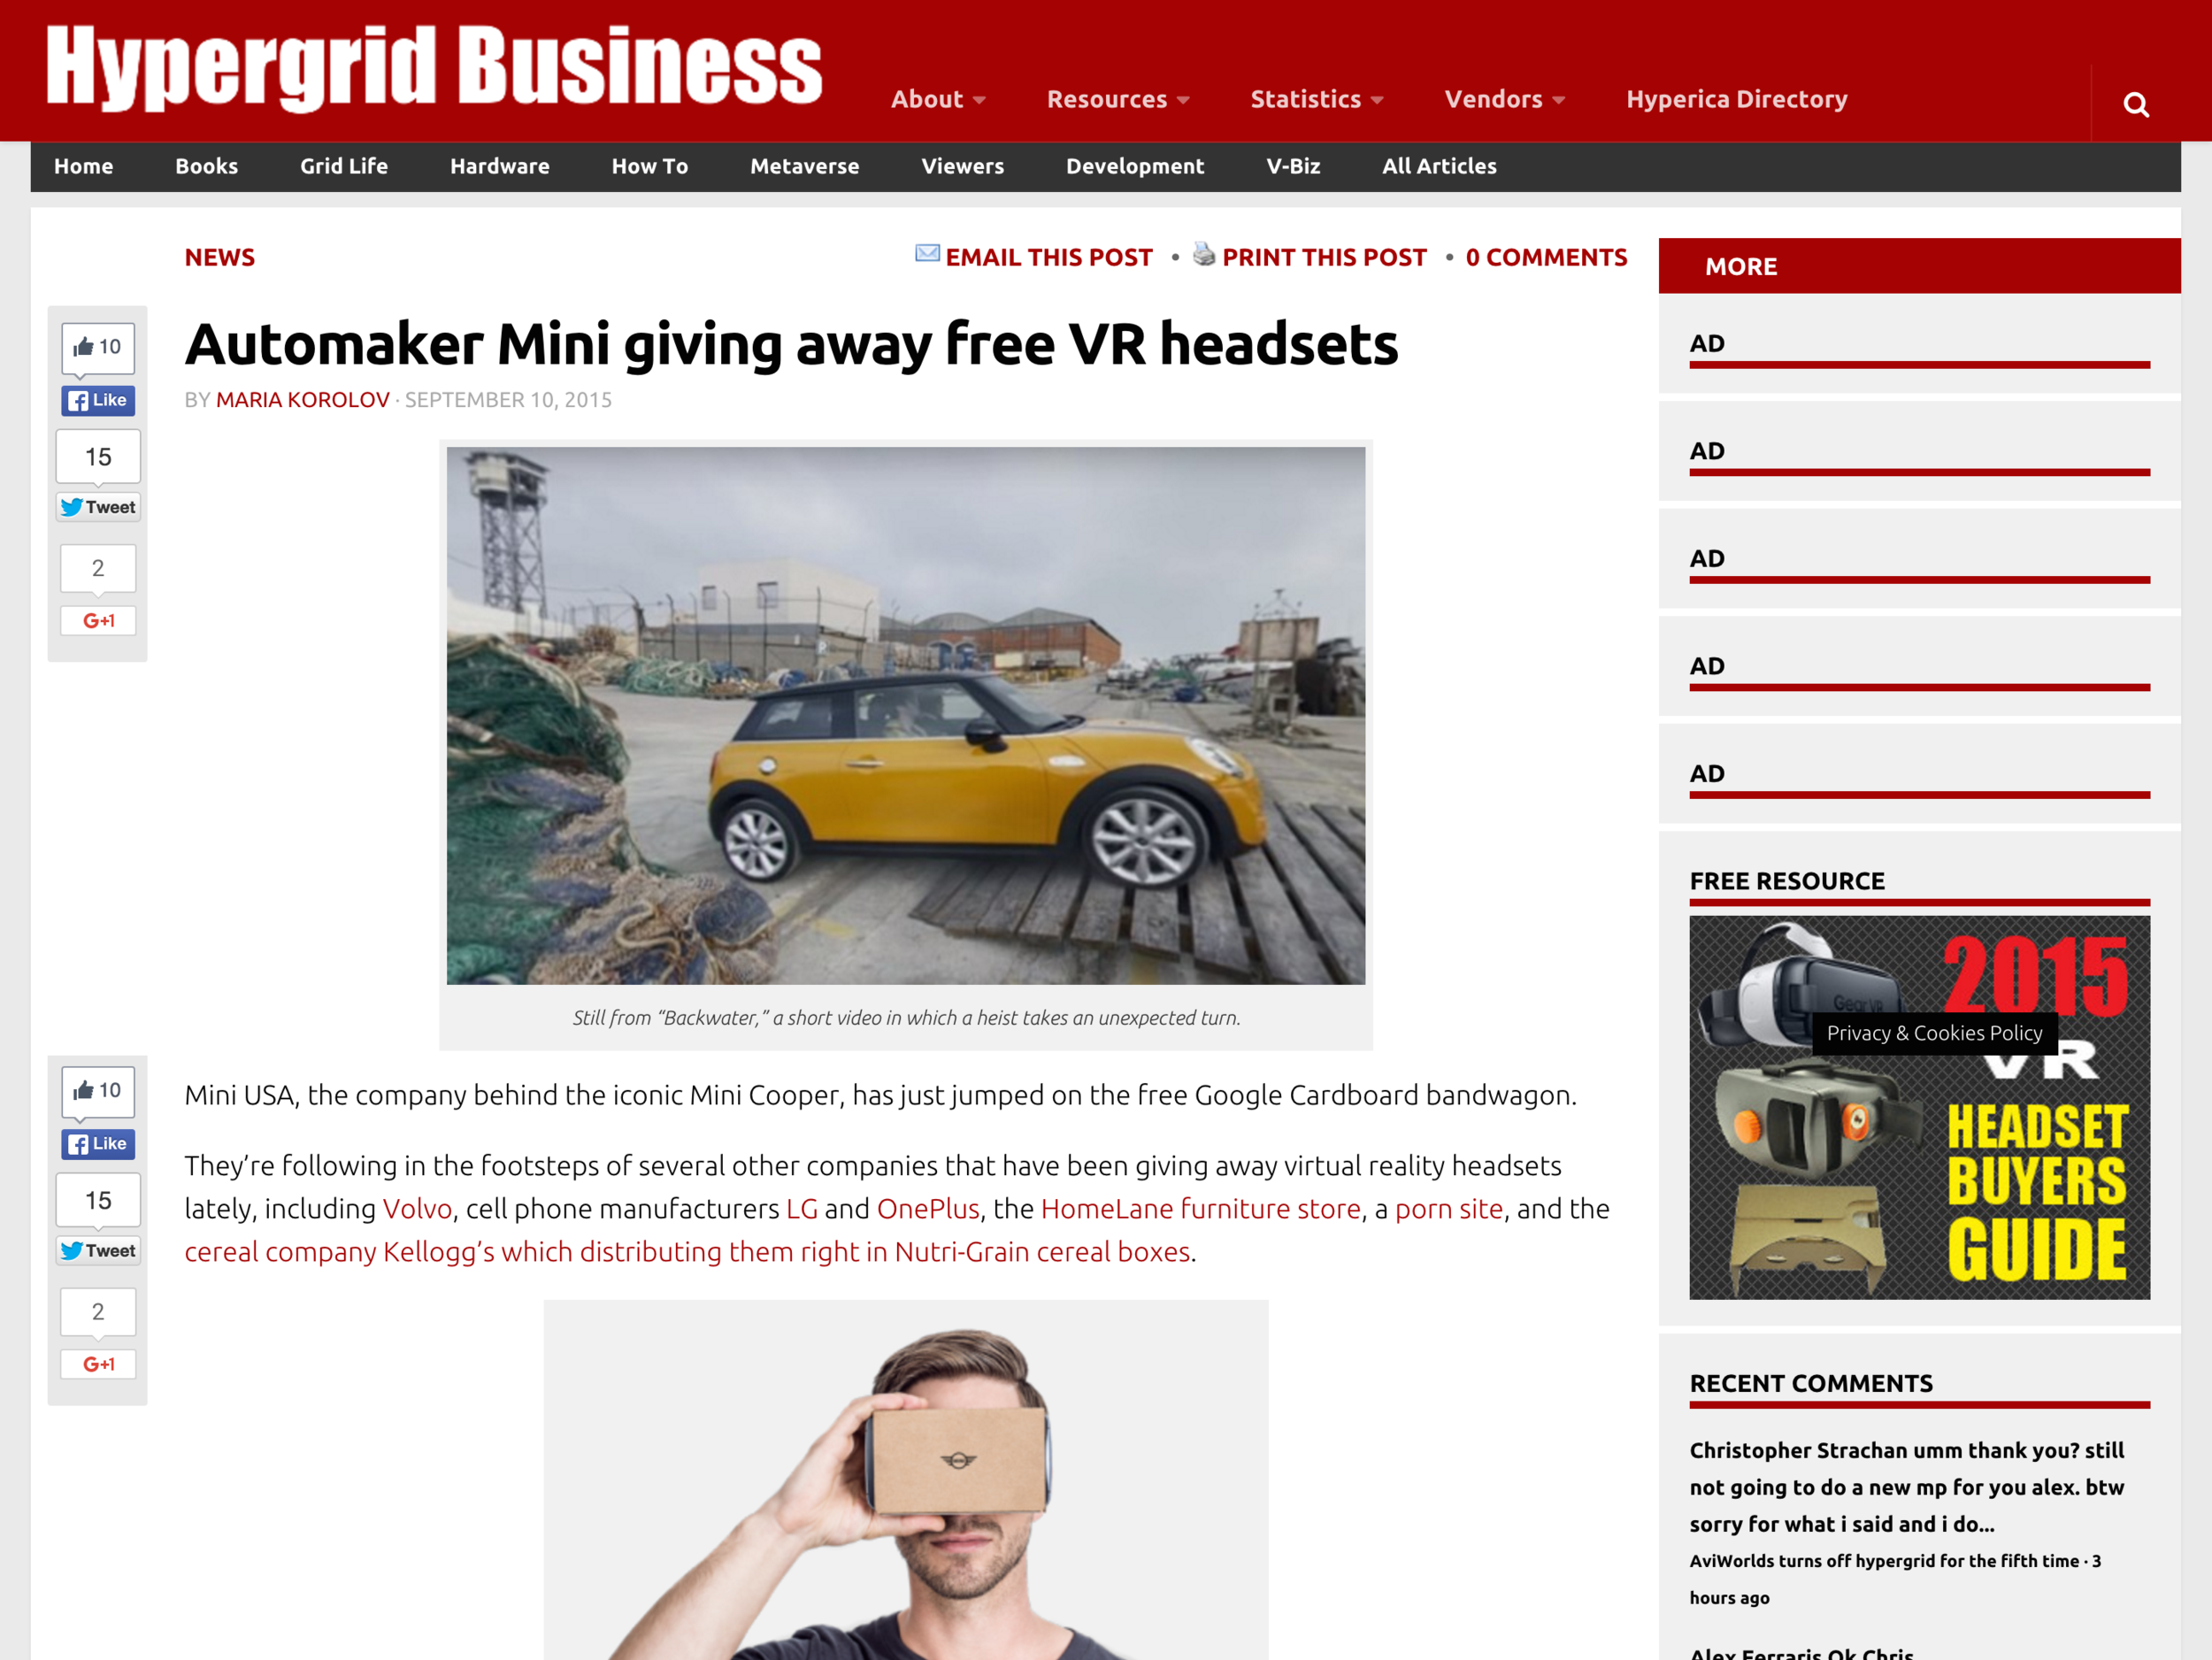 screencapture-www-hypergridbusiness-com-2015-09-automaker-mini-giving-away-free-vr-headsets-1447202017175.png